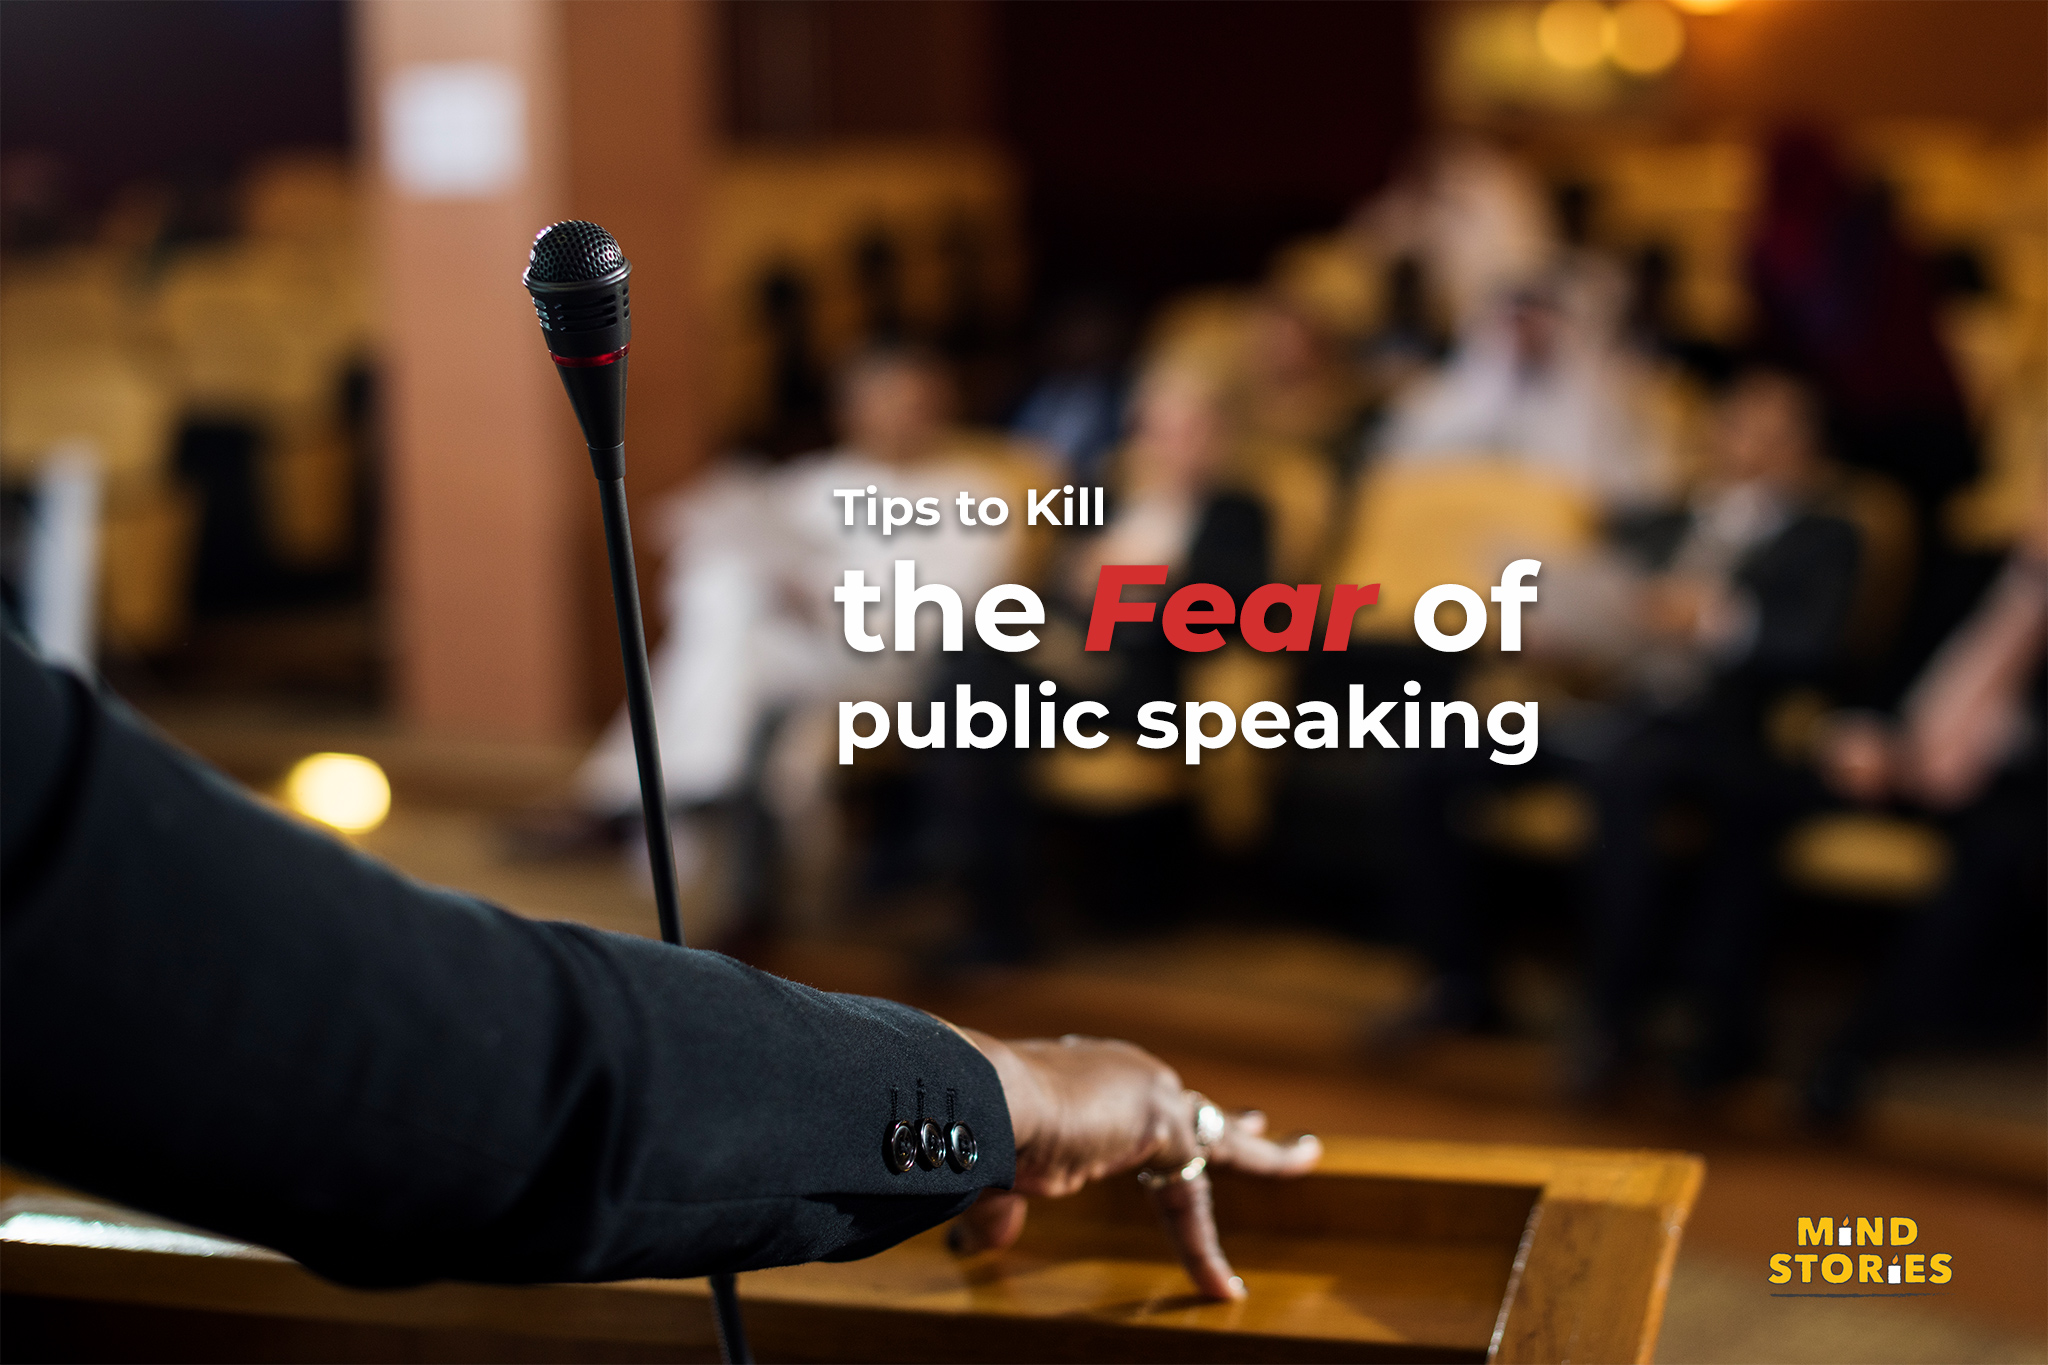 Tips to Kill the Fear of public speaking